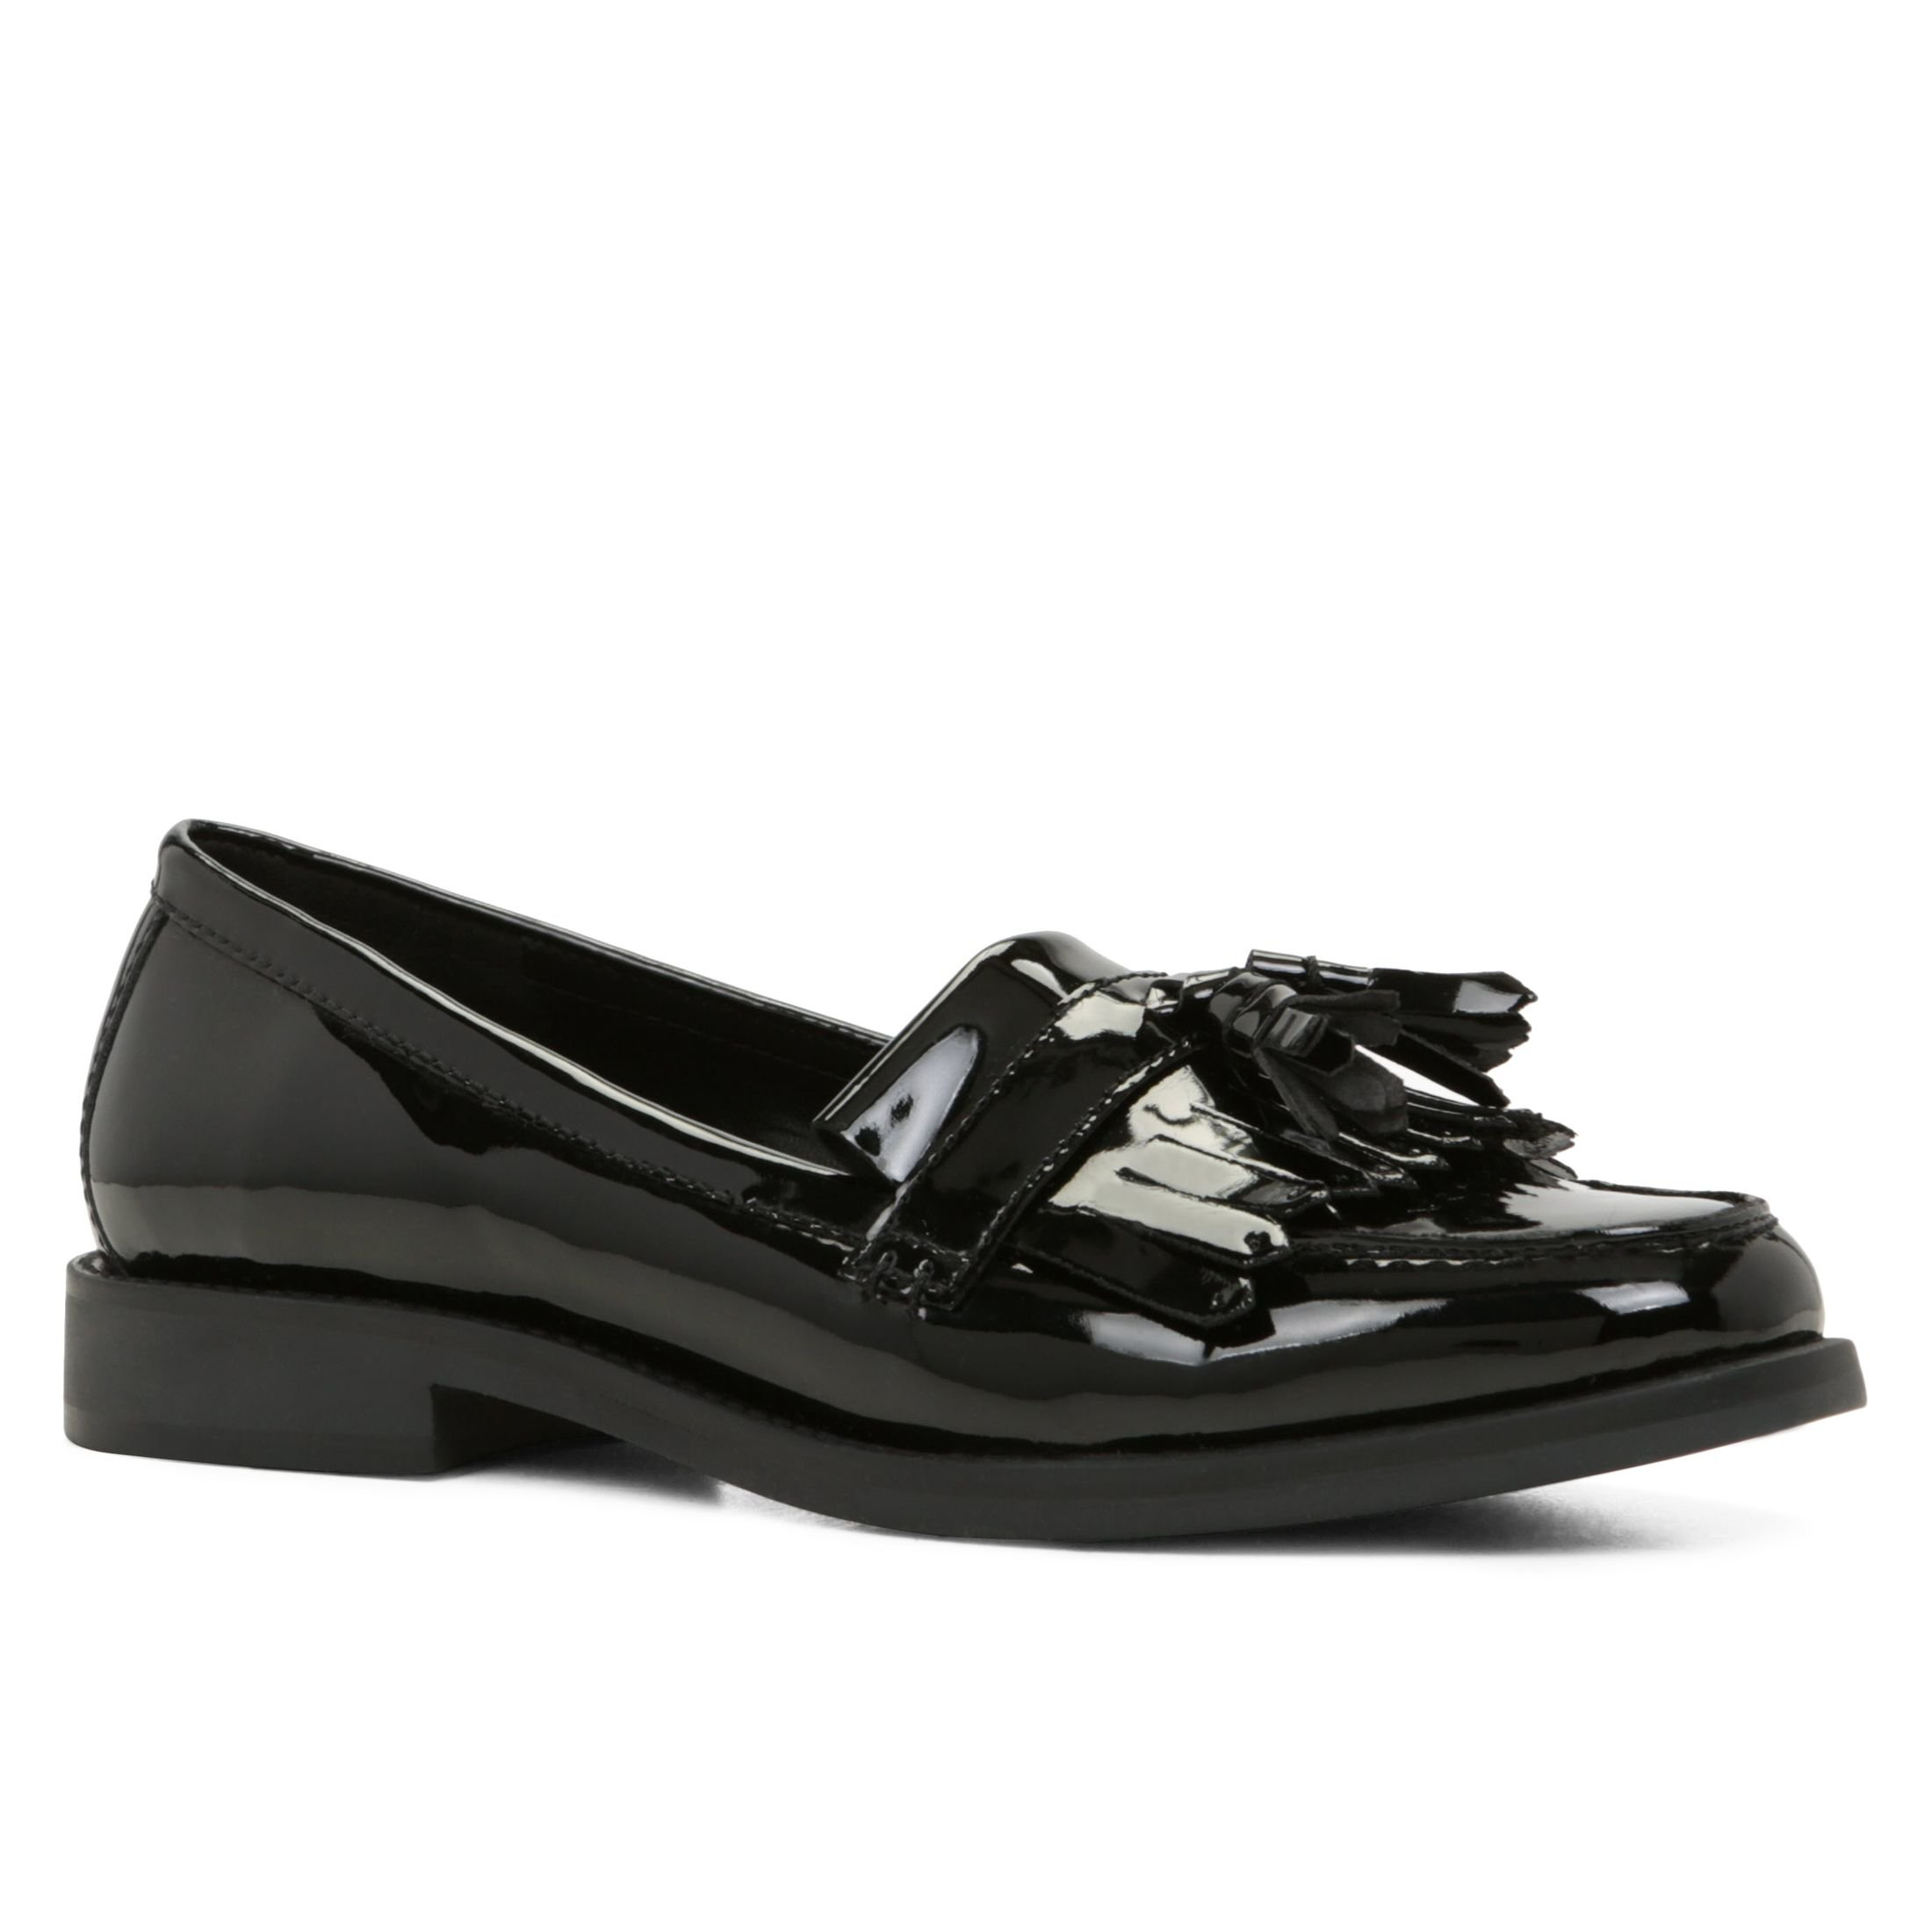 aldo crisp slip on structured shoes in black black patent